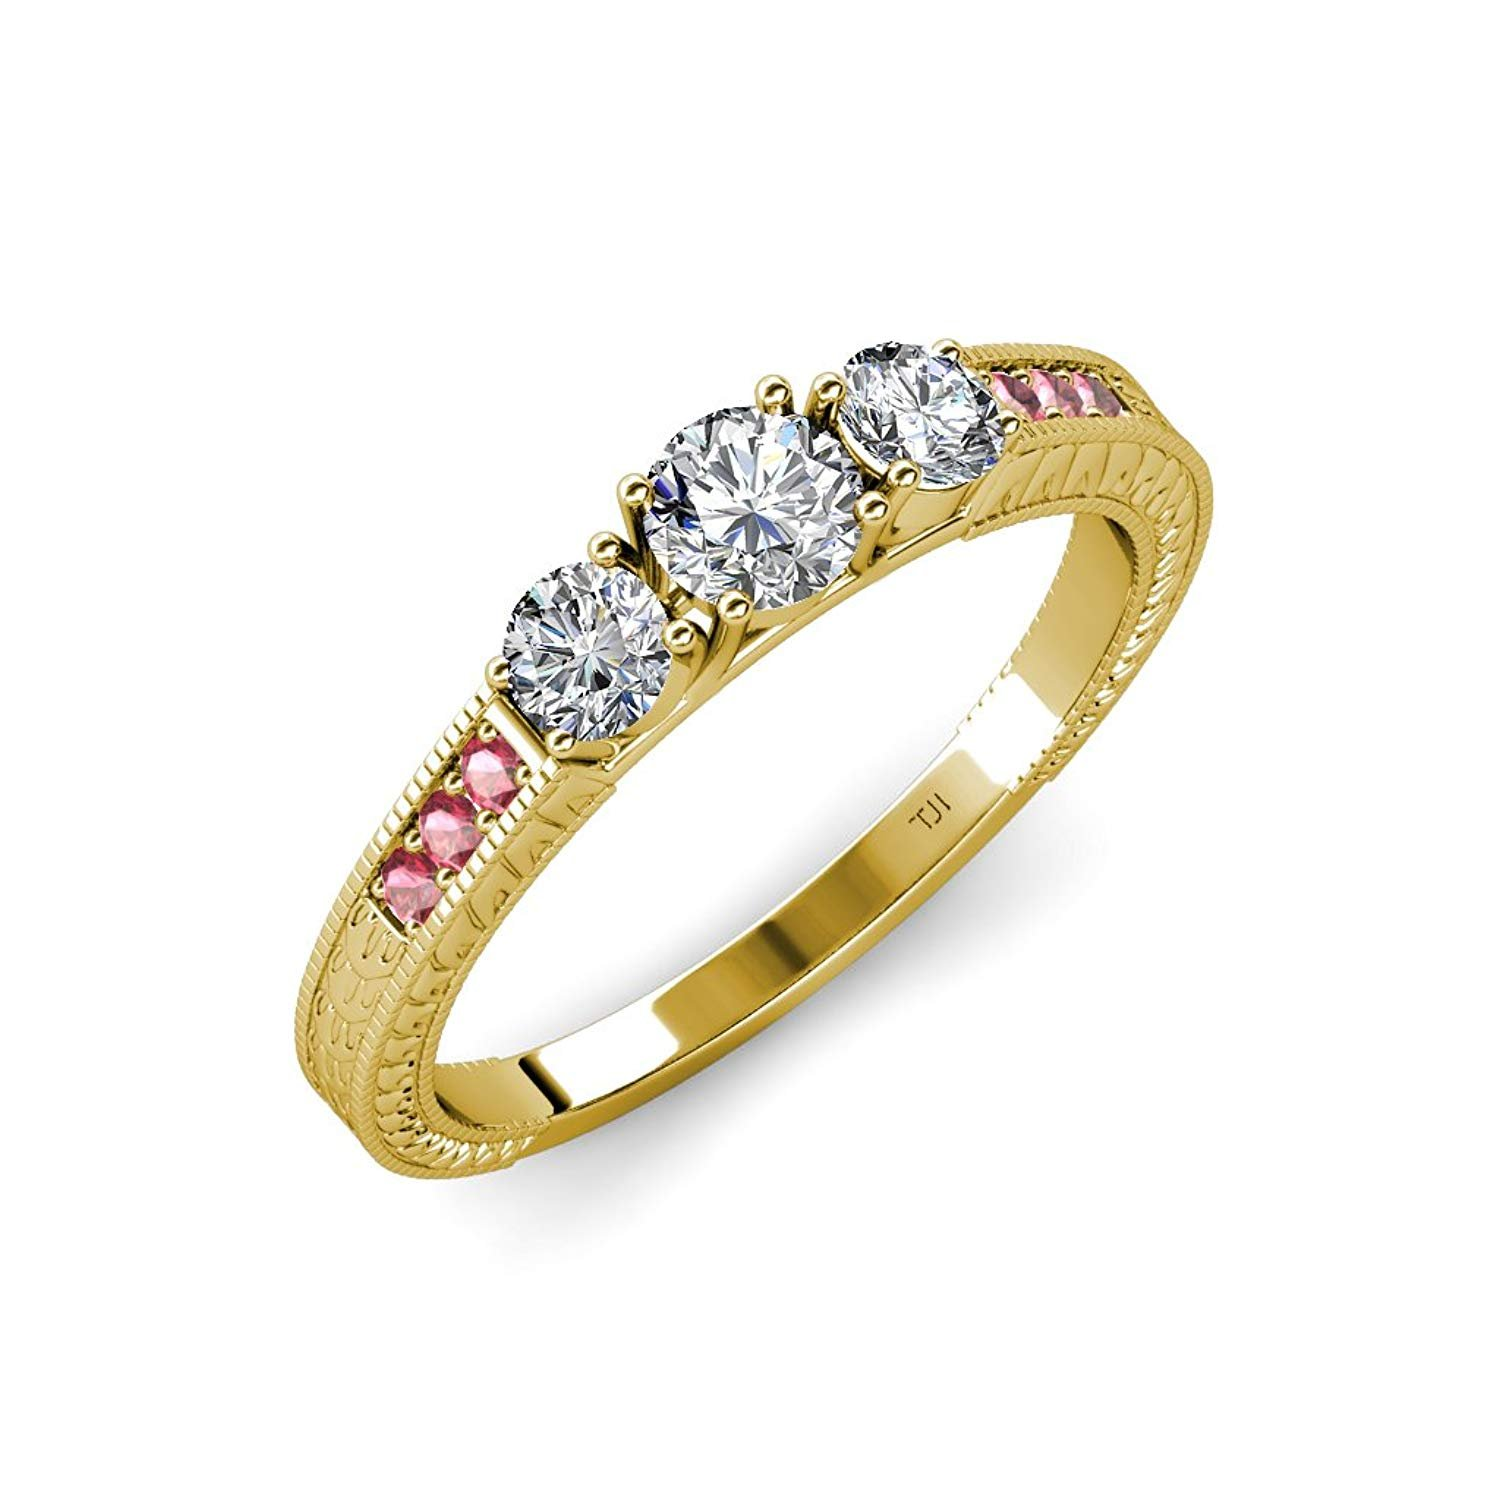 Diamond Milgrain Three Stone Ring with Pink Tourmaline on Side Bar 0.85 ct tw in 14K Yellow Gold.size 8.0 by TriJewels